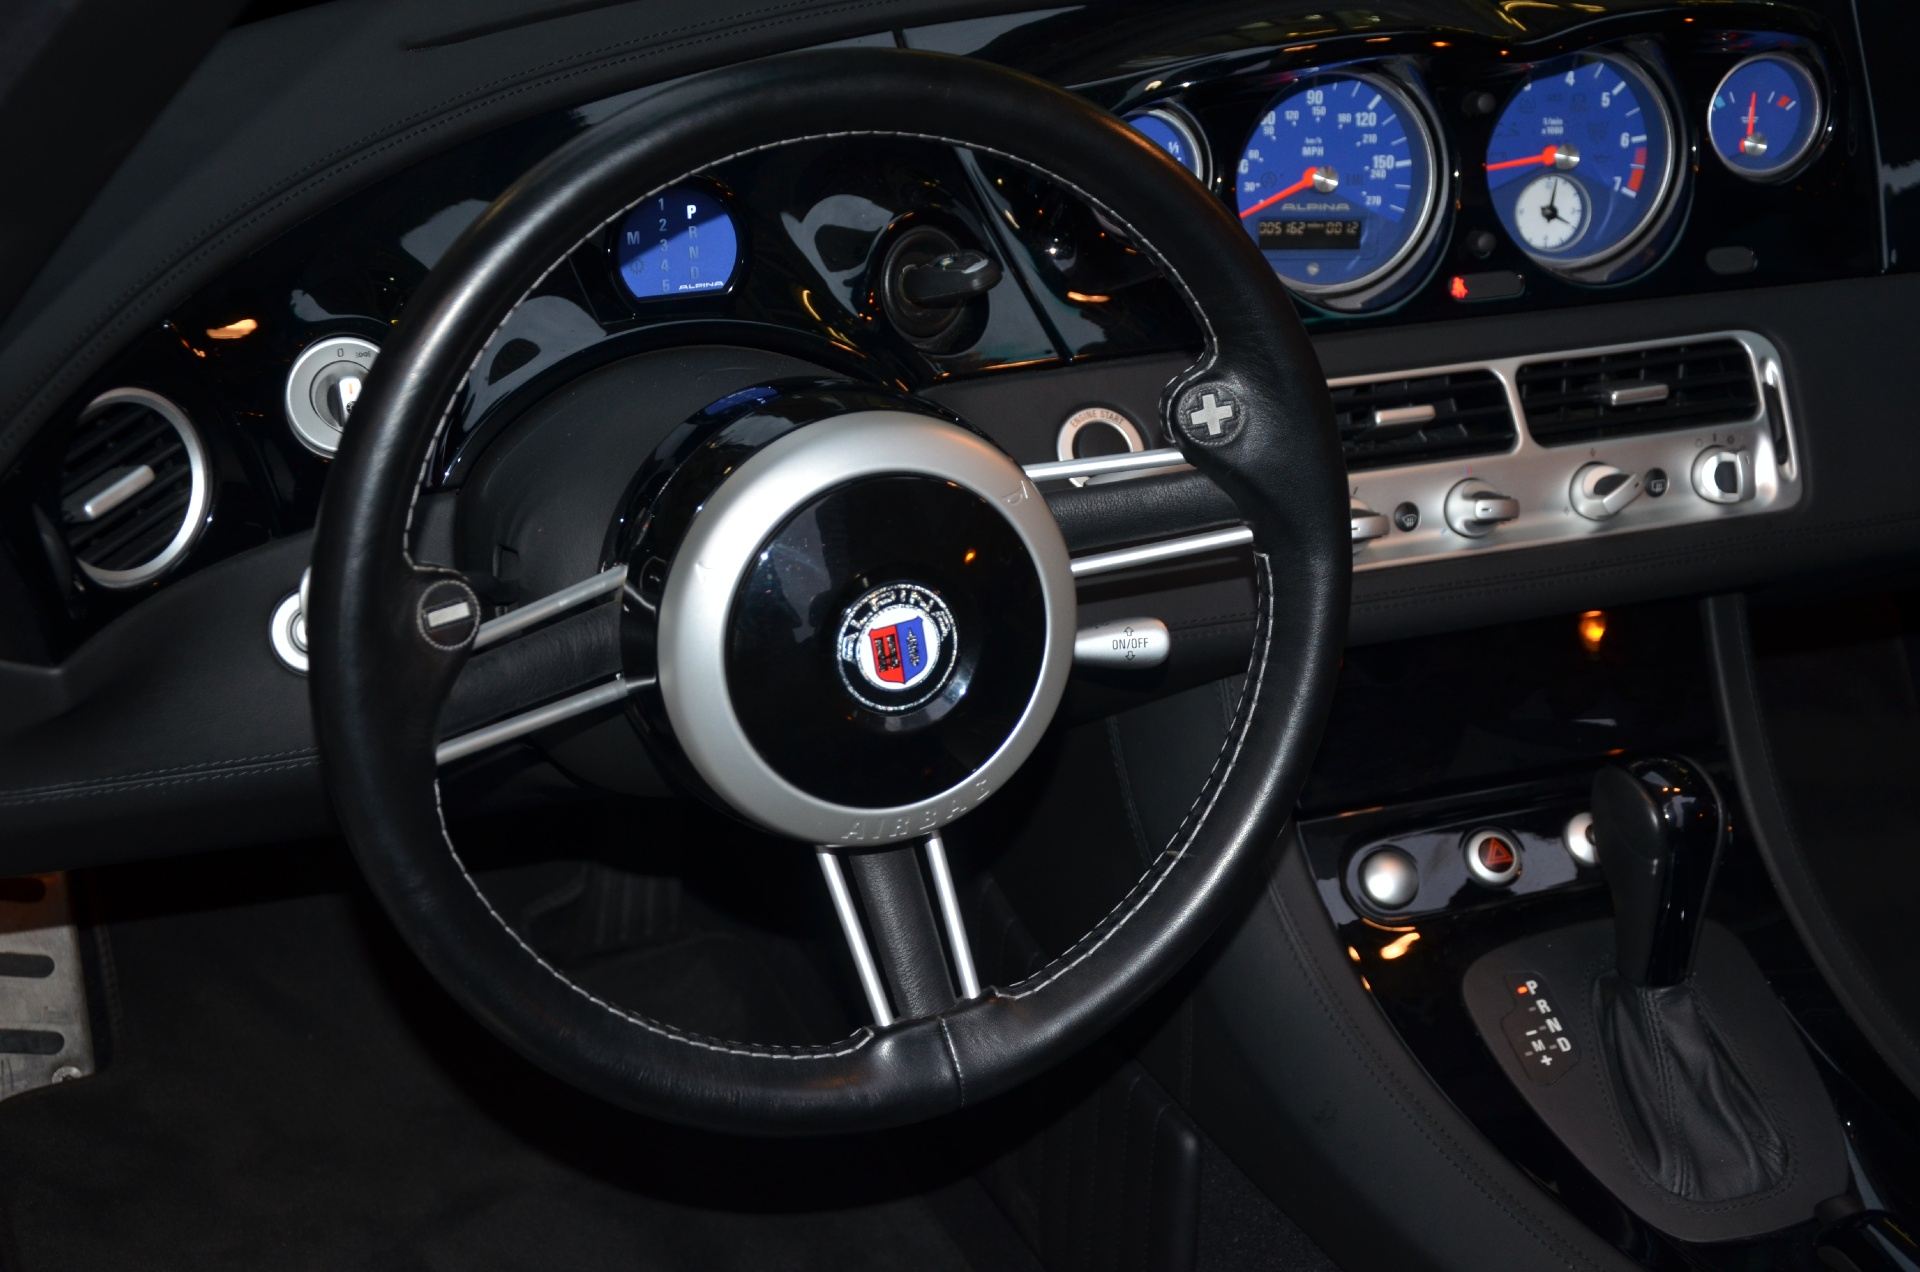 bmw z8 steering wheel wiring diagrams wiring diagram schemes. Black Bedroom Furniture Sets. Home Design Ideas